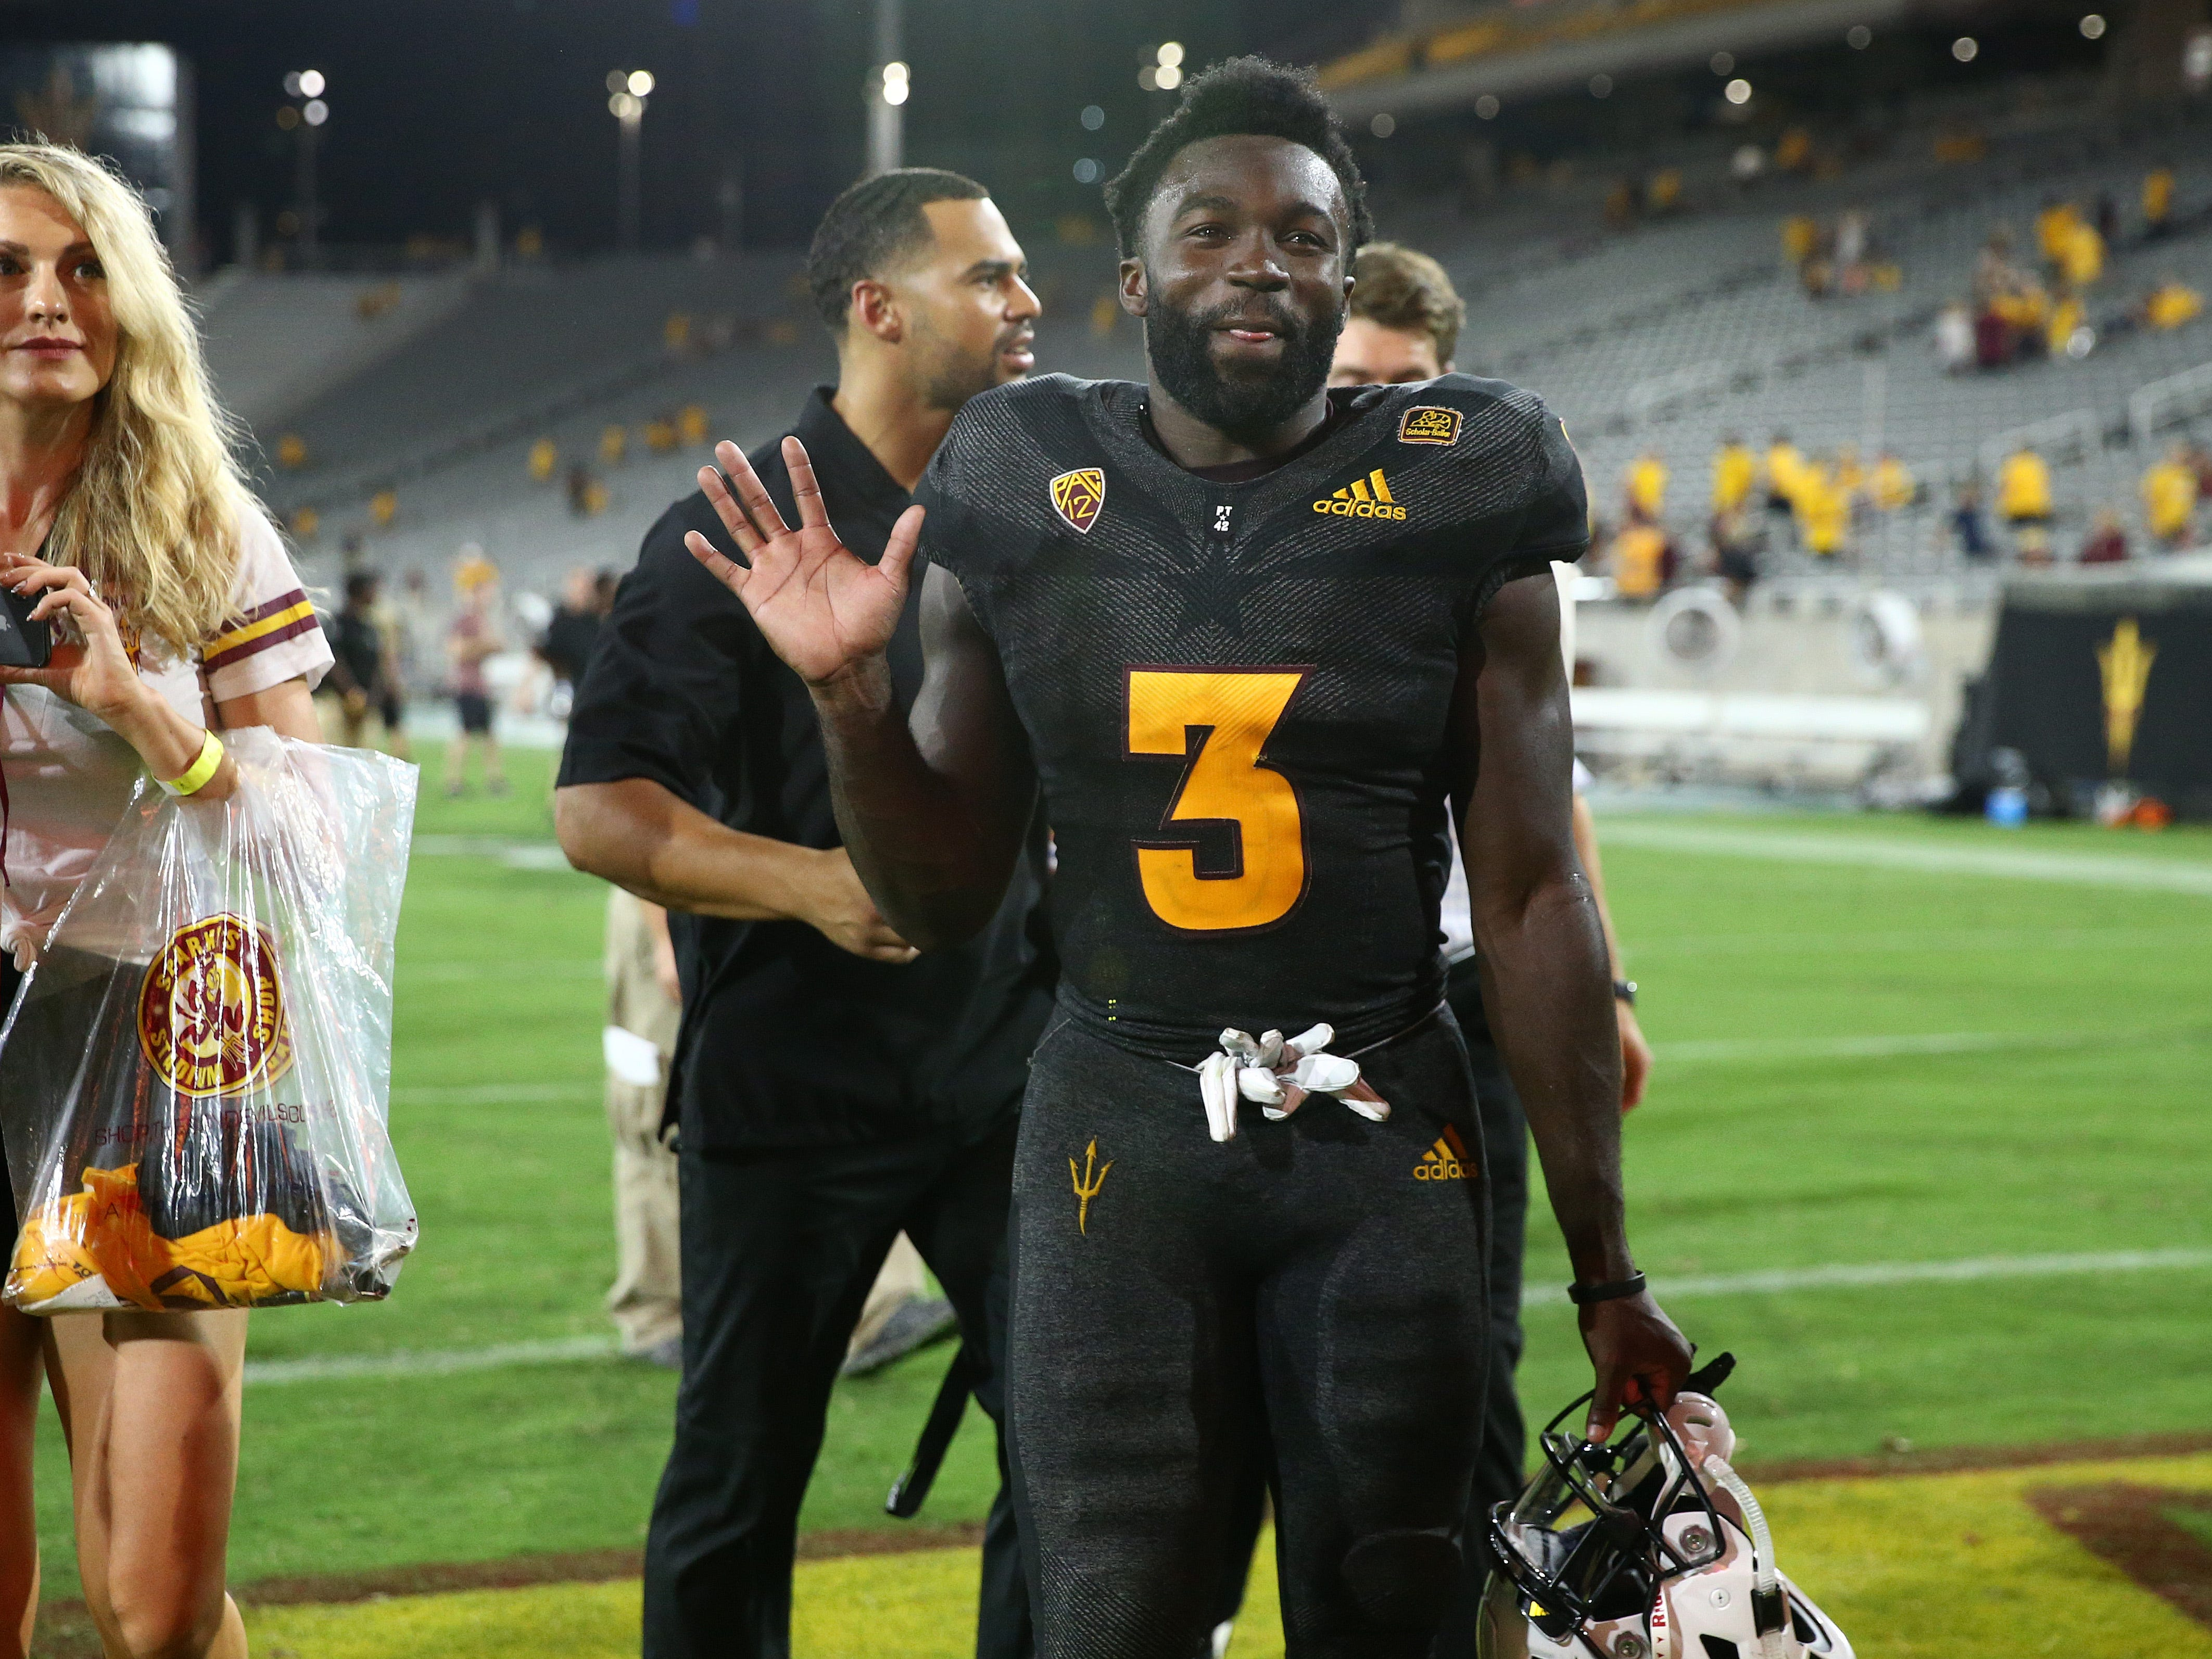 Arizona State running back Eno Benjamin smiles after his 312-yard rushing game against Oregon State on Sep. 29, 2018, at Sun Devil Stadium.